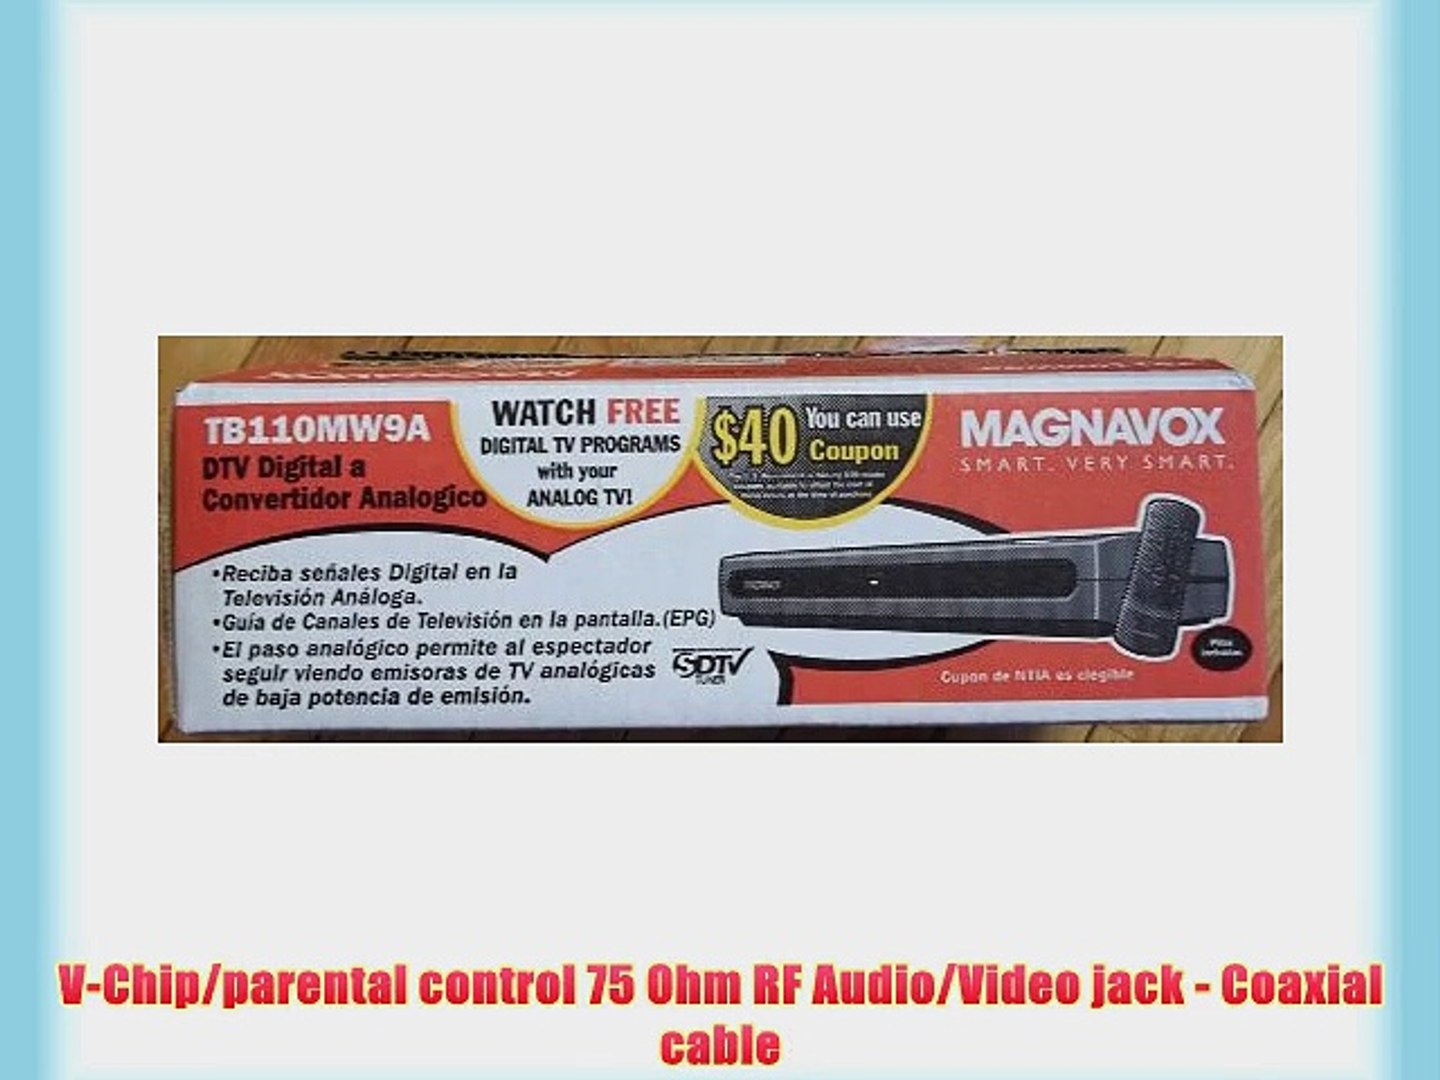 how do i hook up a magnavox sdtv tuner